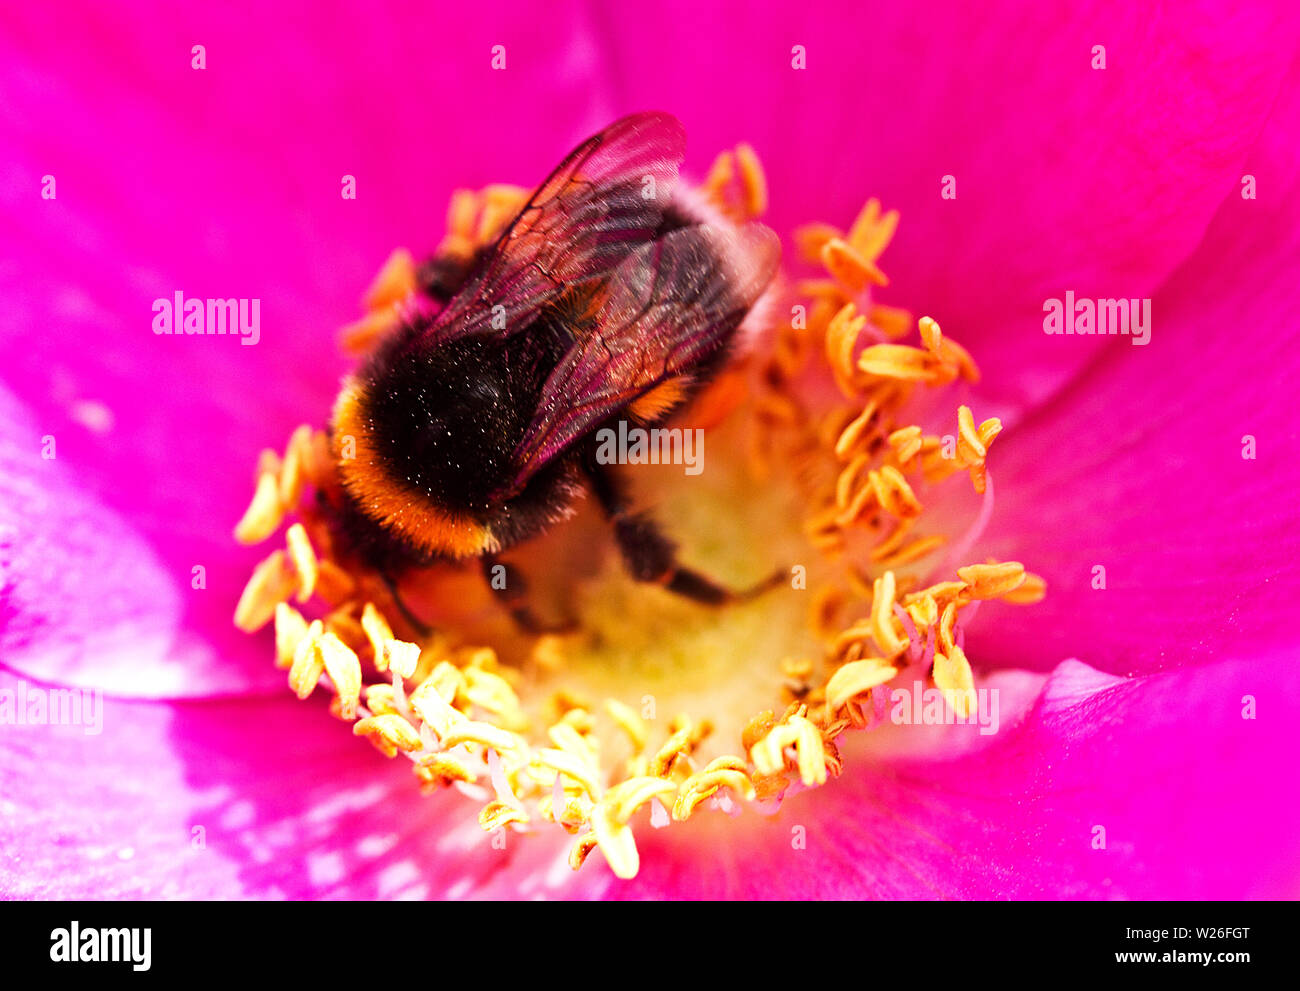 When a White-tailed Bumble Bee alights on a flower such as this Rosa rugosa the pitch of the noise generated by its wing beats alters - Stock Image